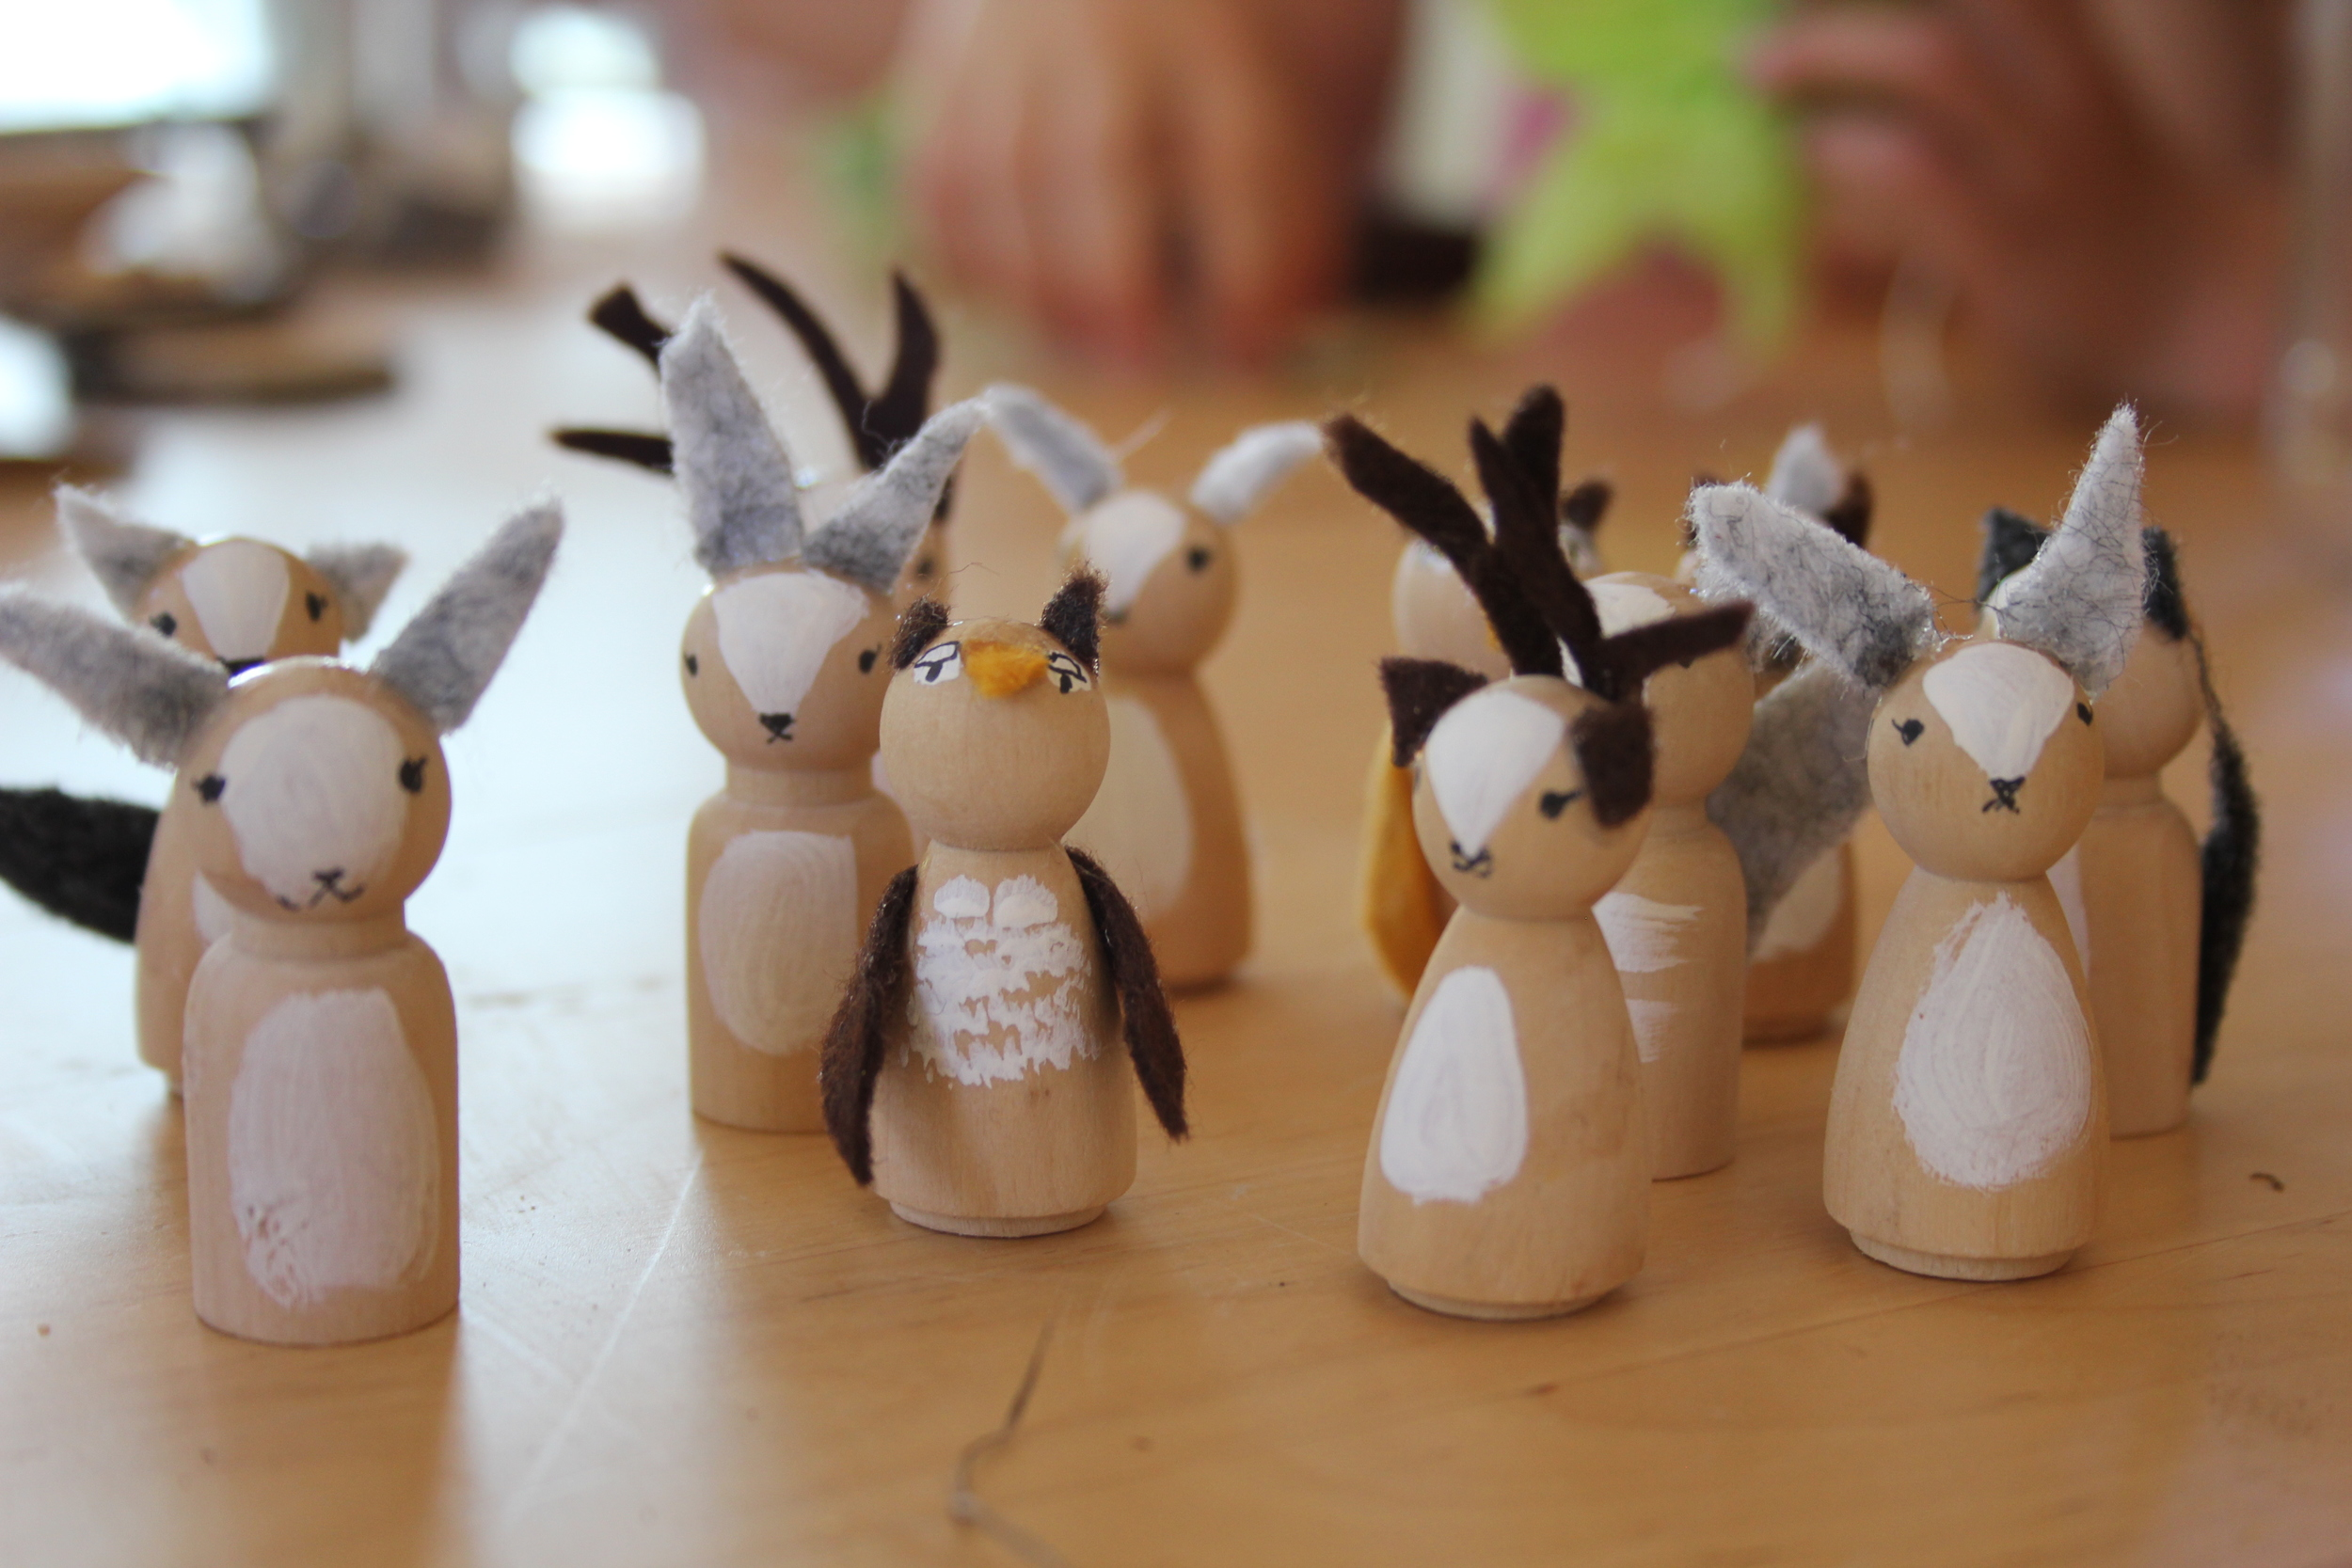 2. Invite some woodland friends. We found these wooden peg people at our local craft store. Add some faces, acrylic paint and felt ears, feathers or antlers.